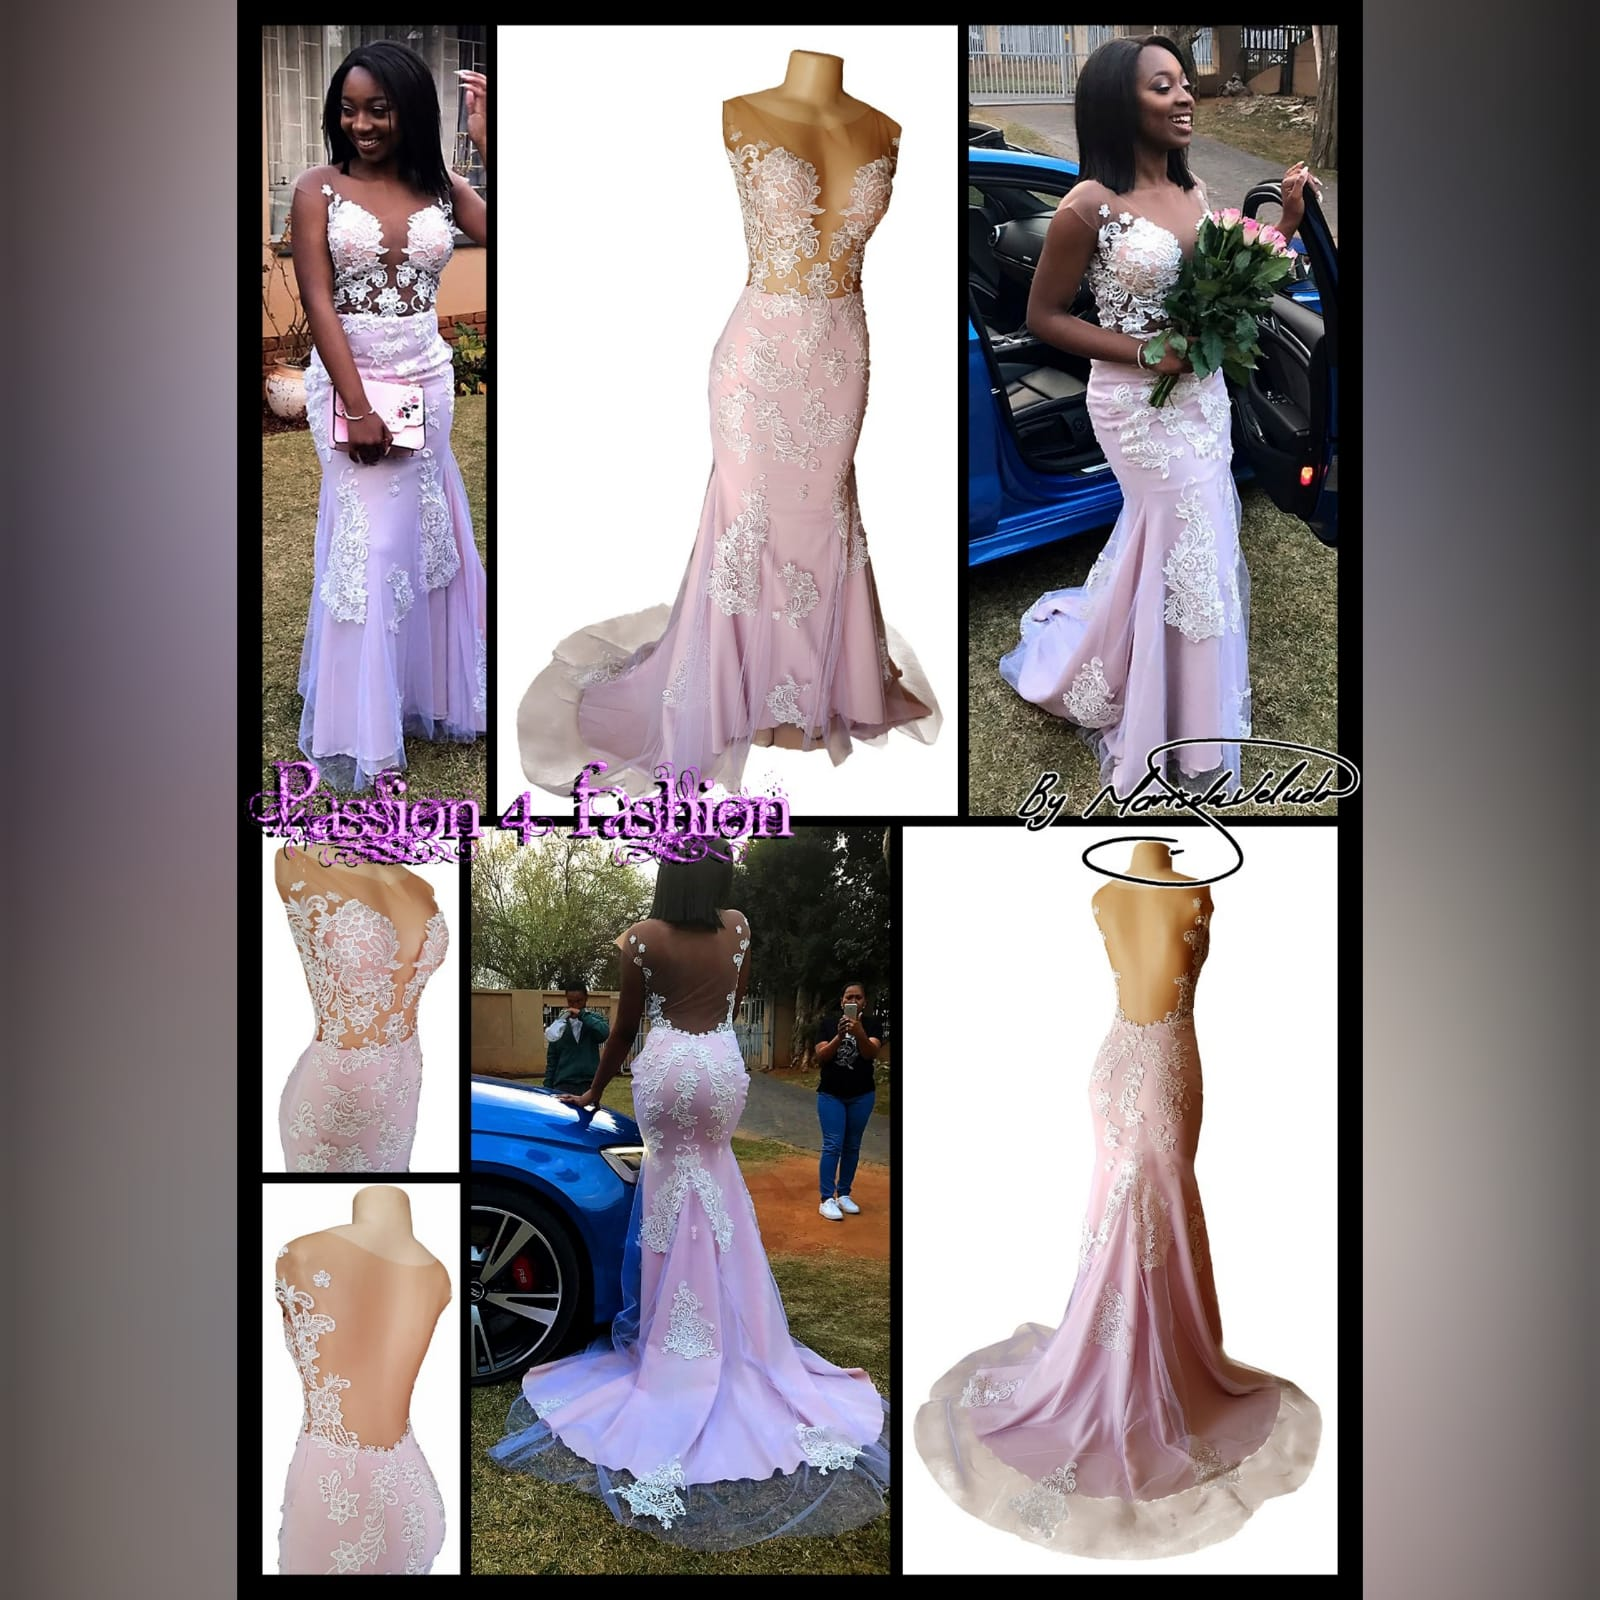 Pink and white lace soft mermaid prom dress 5 pink and white lace soft mermaid prom dress with an illusion bodice detailed with lace, an illusion open back. Bottom with an overlayer of tulle detailed with lace and a train.